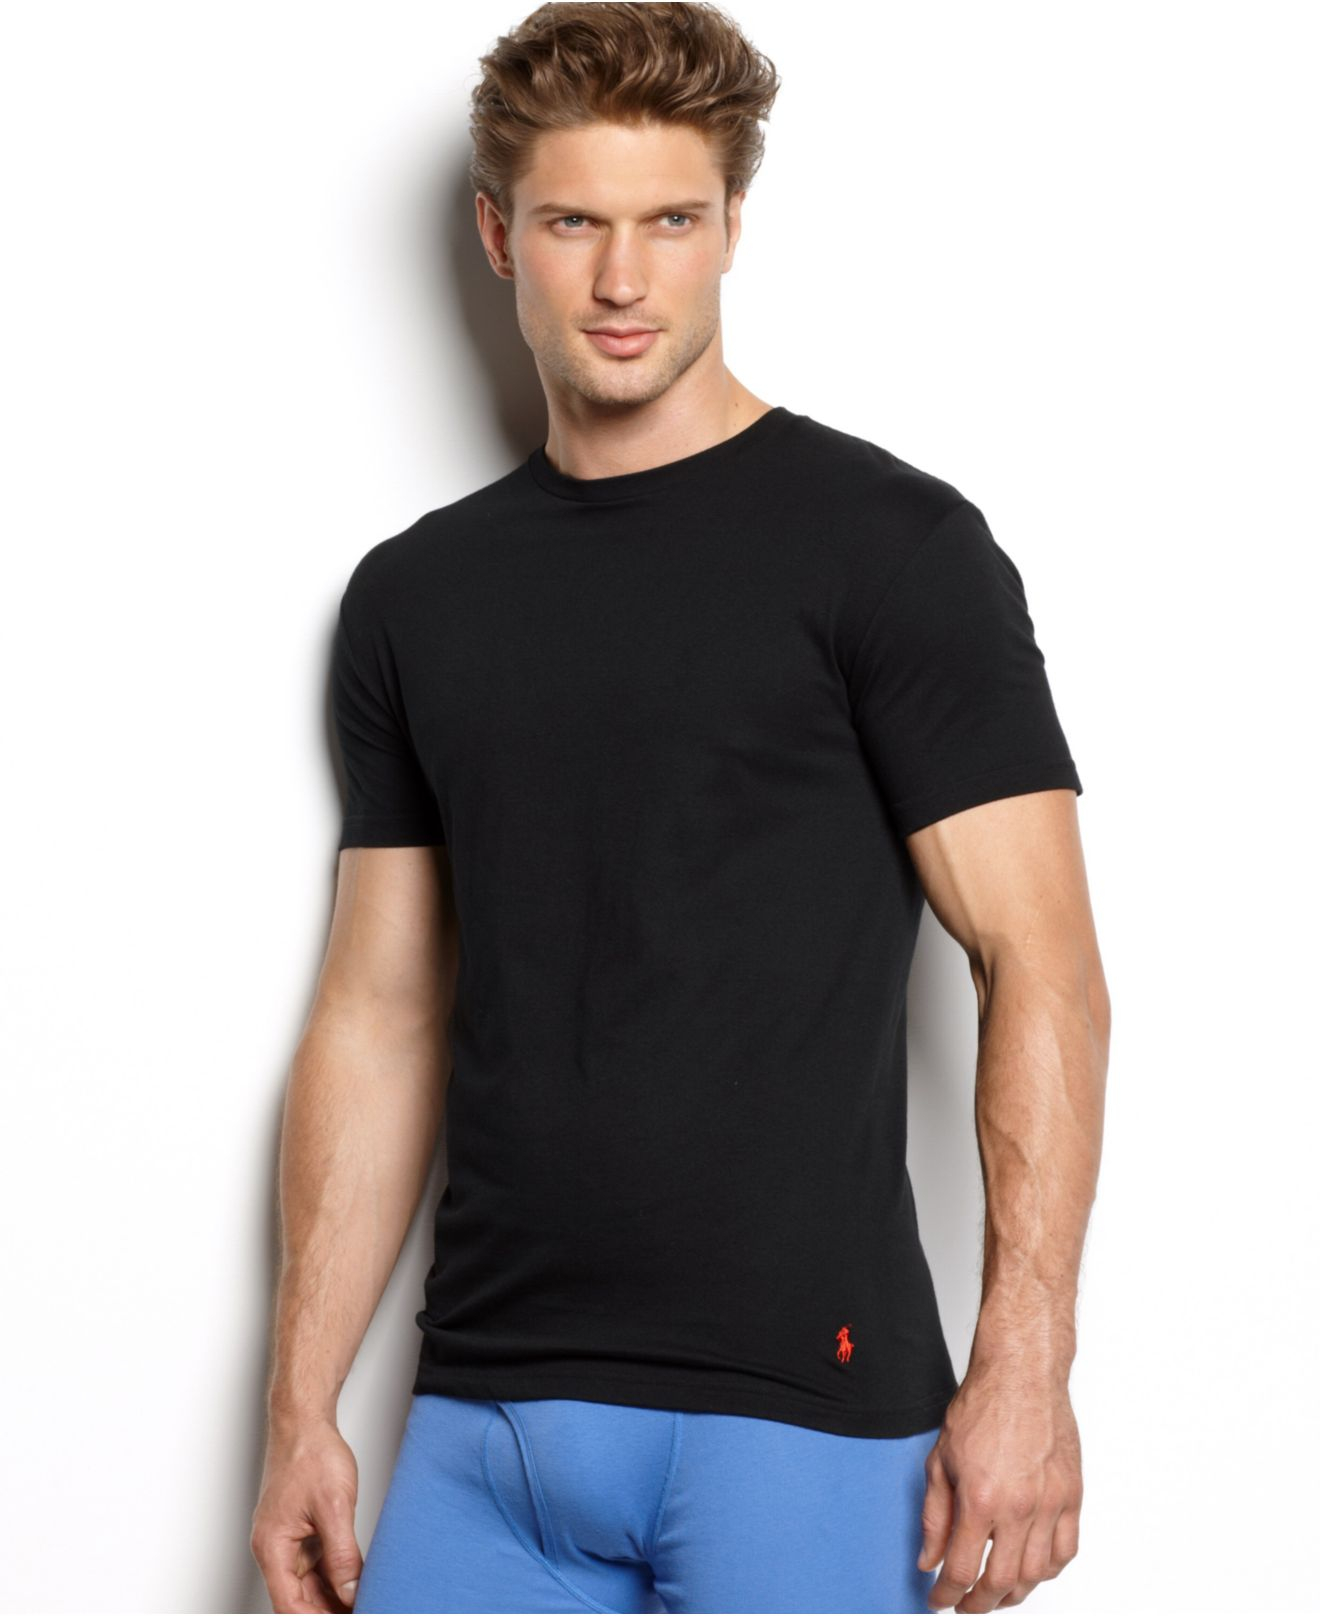 Polo ralph lauren Men's Underwear, Classic Cotton Crew T ...